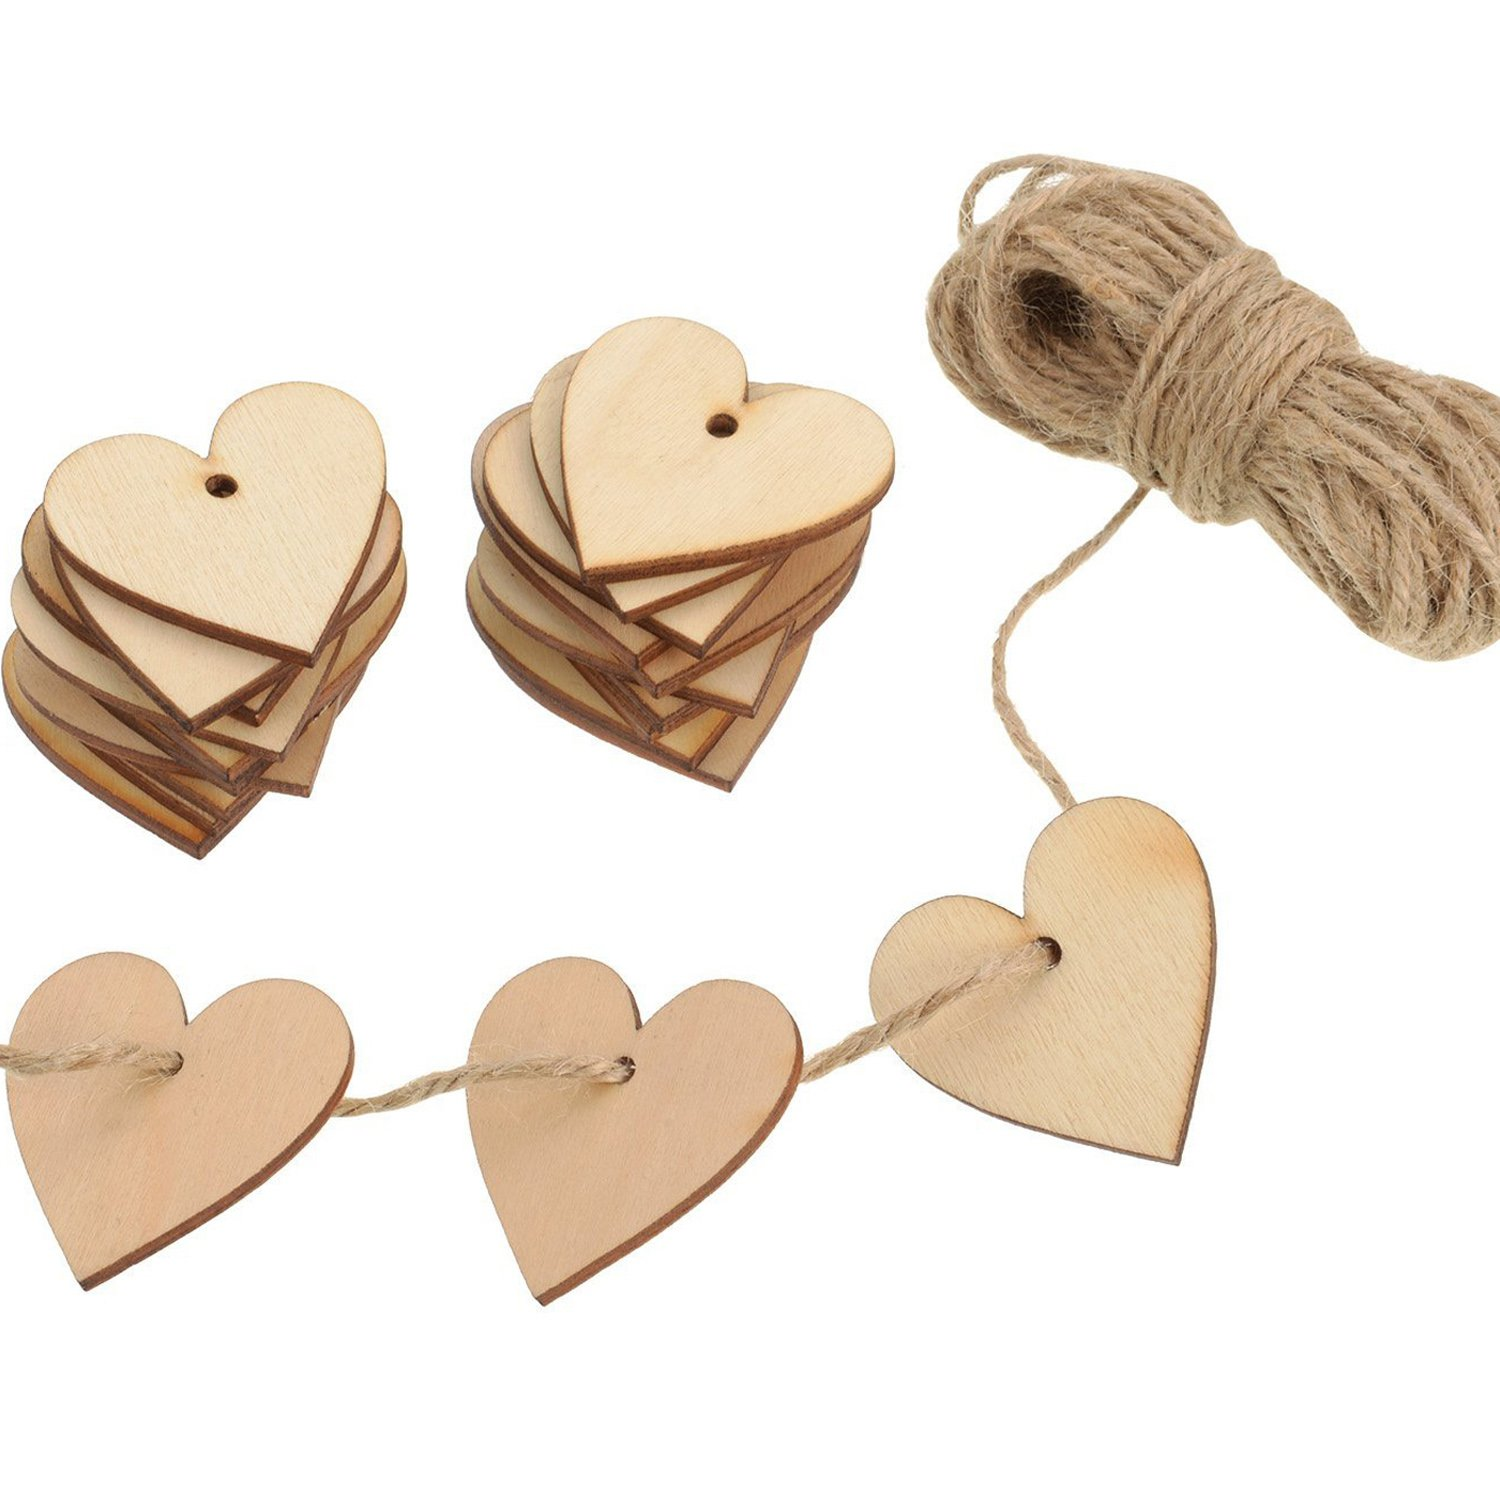 100 Pieces Wood Heart Blank Wooden Heart Embellishments 40 mm with 10 m Natural Twine for Wedding DIY Arts Crafts Card Making Valentine Decoration Outus 4336907232